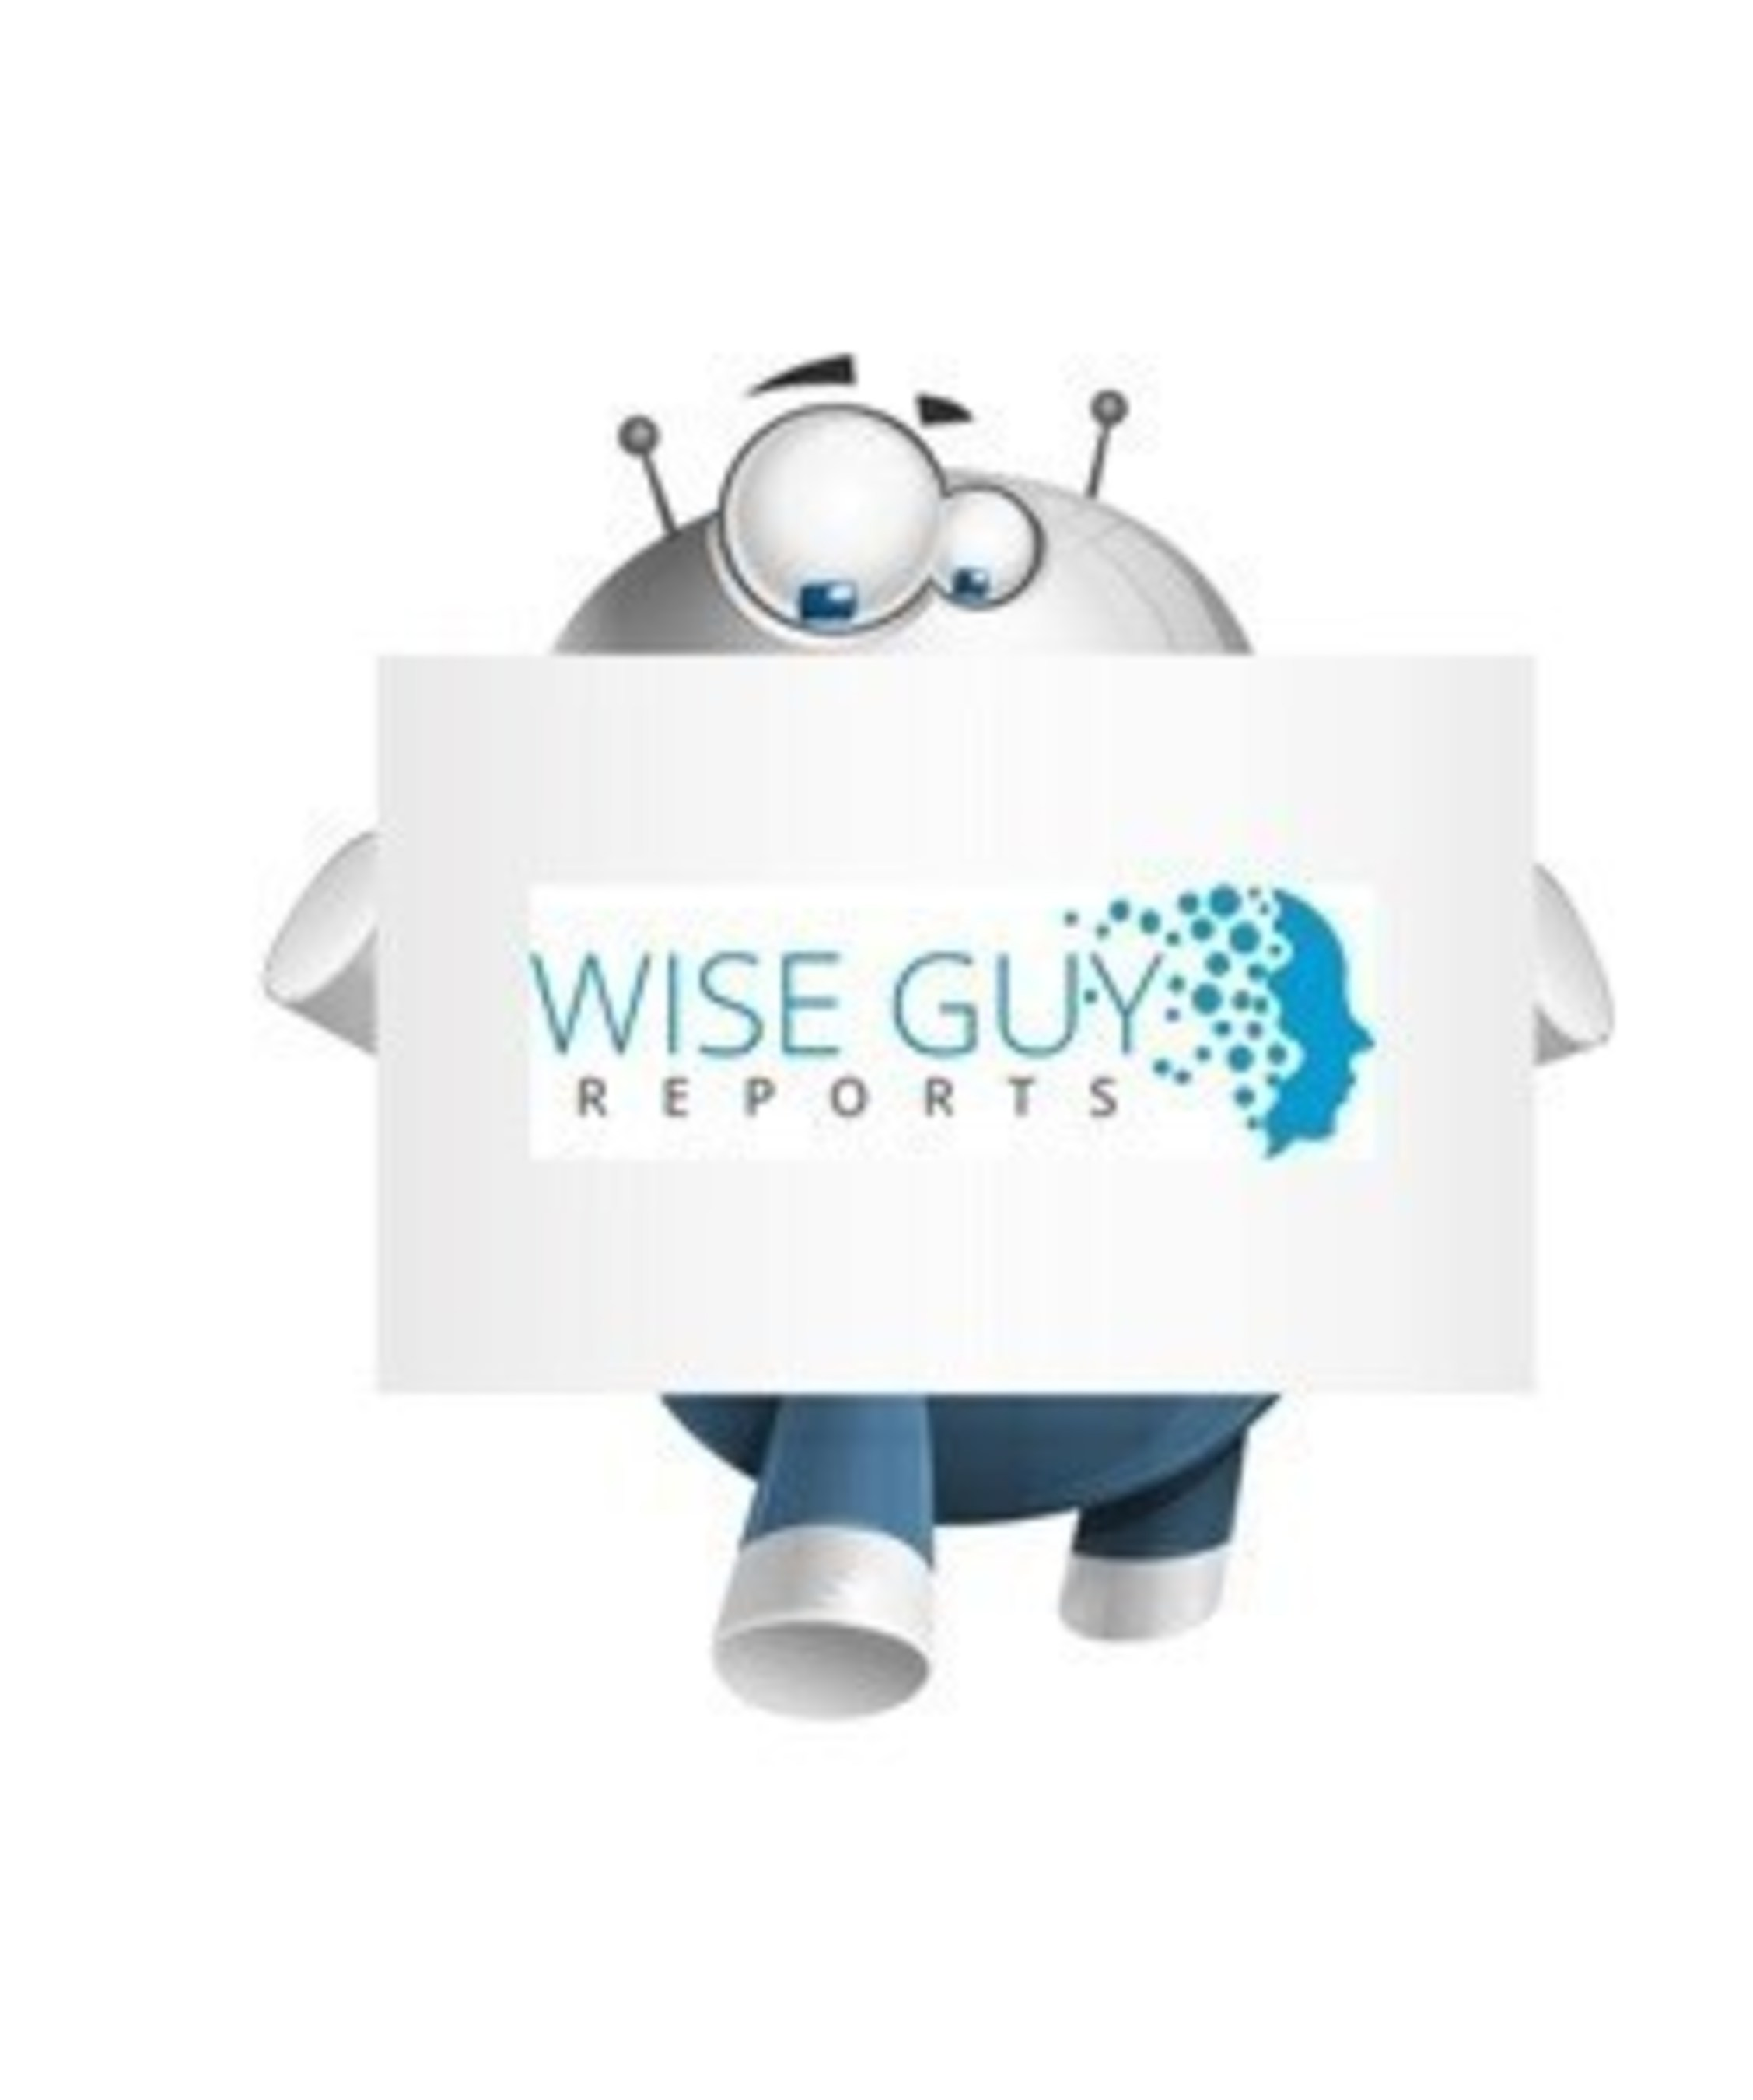 Western Europe M2M Platform Market to Grow 20% CAGR to 2020 says a New Research Report Available at WiseGuyReports.com